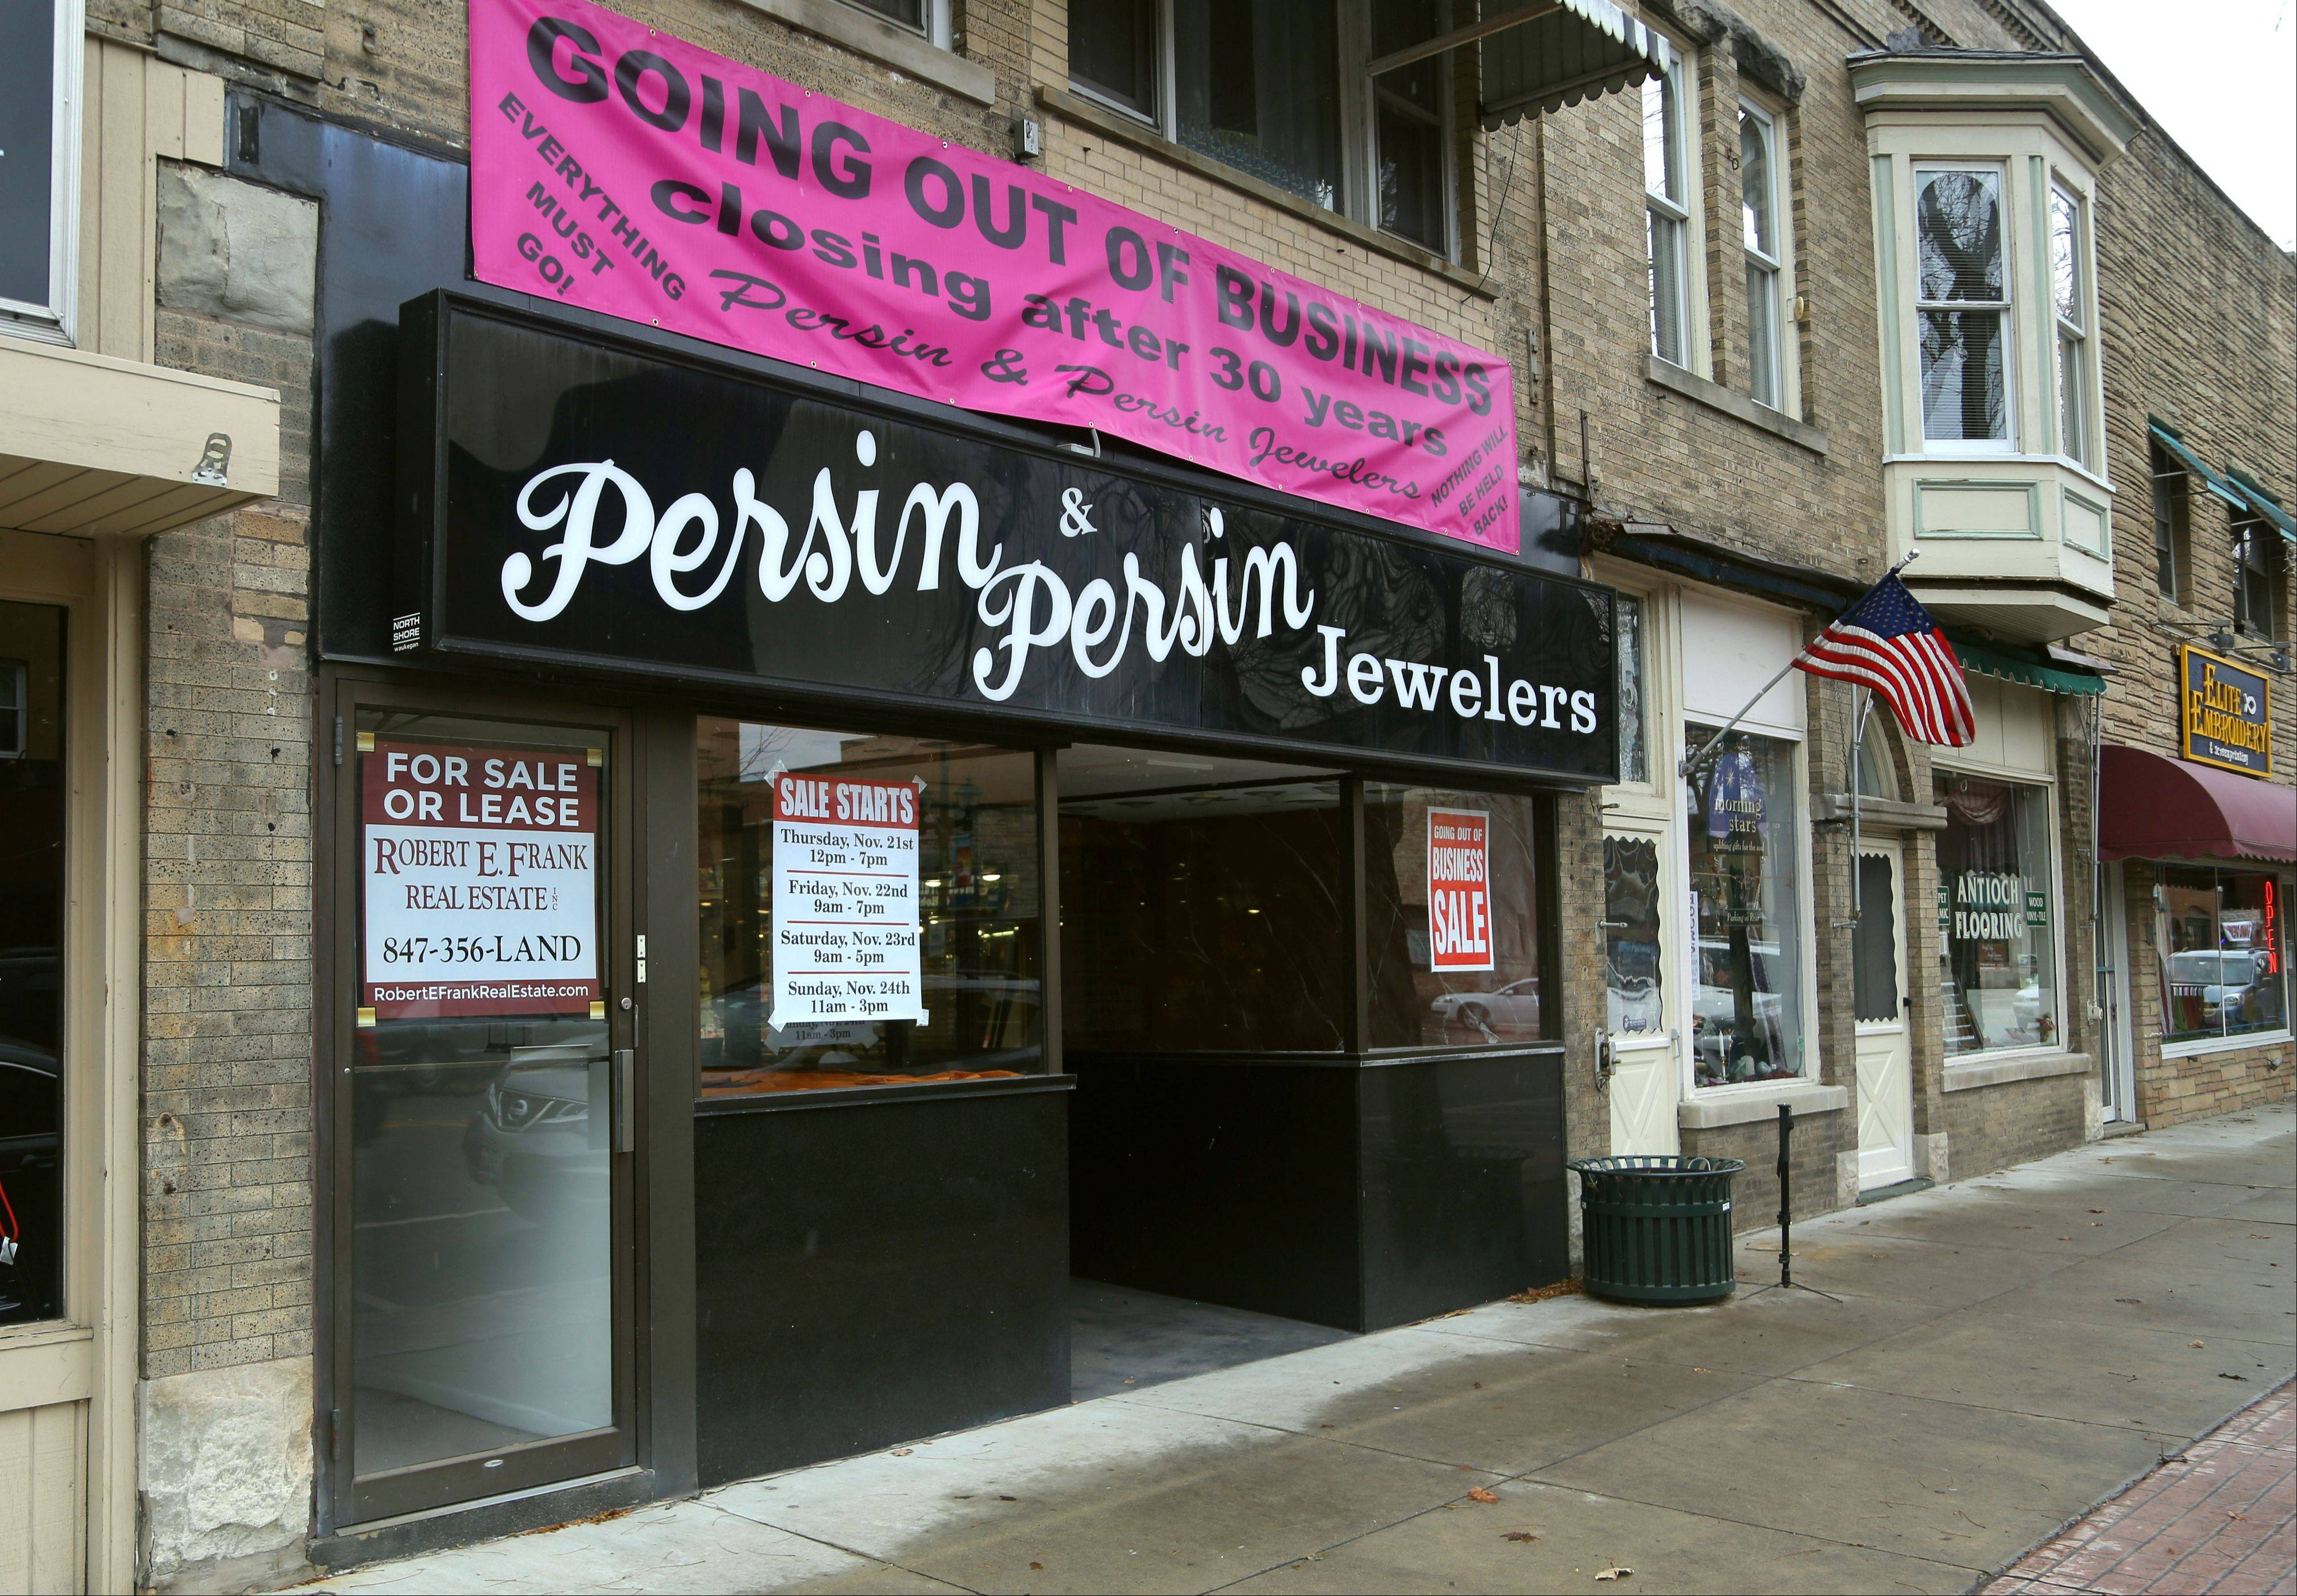 Julian Persin, owner of Persin & Persin jewelry store in Antioch, is closing the business he's run for nearly 30 years.